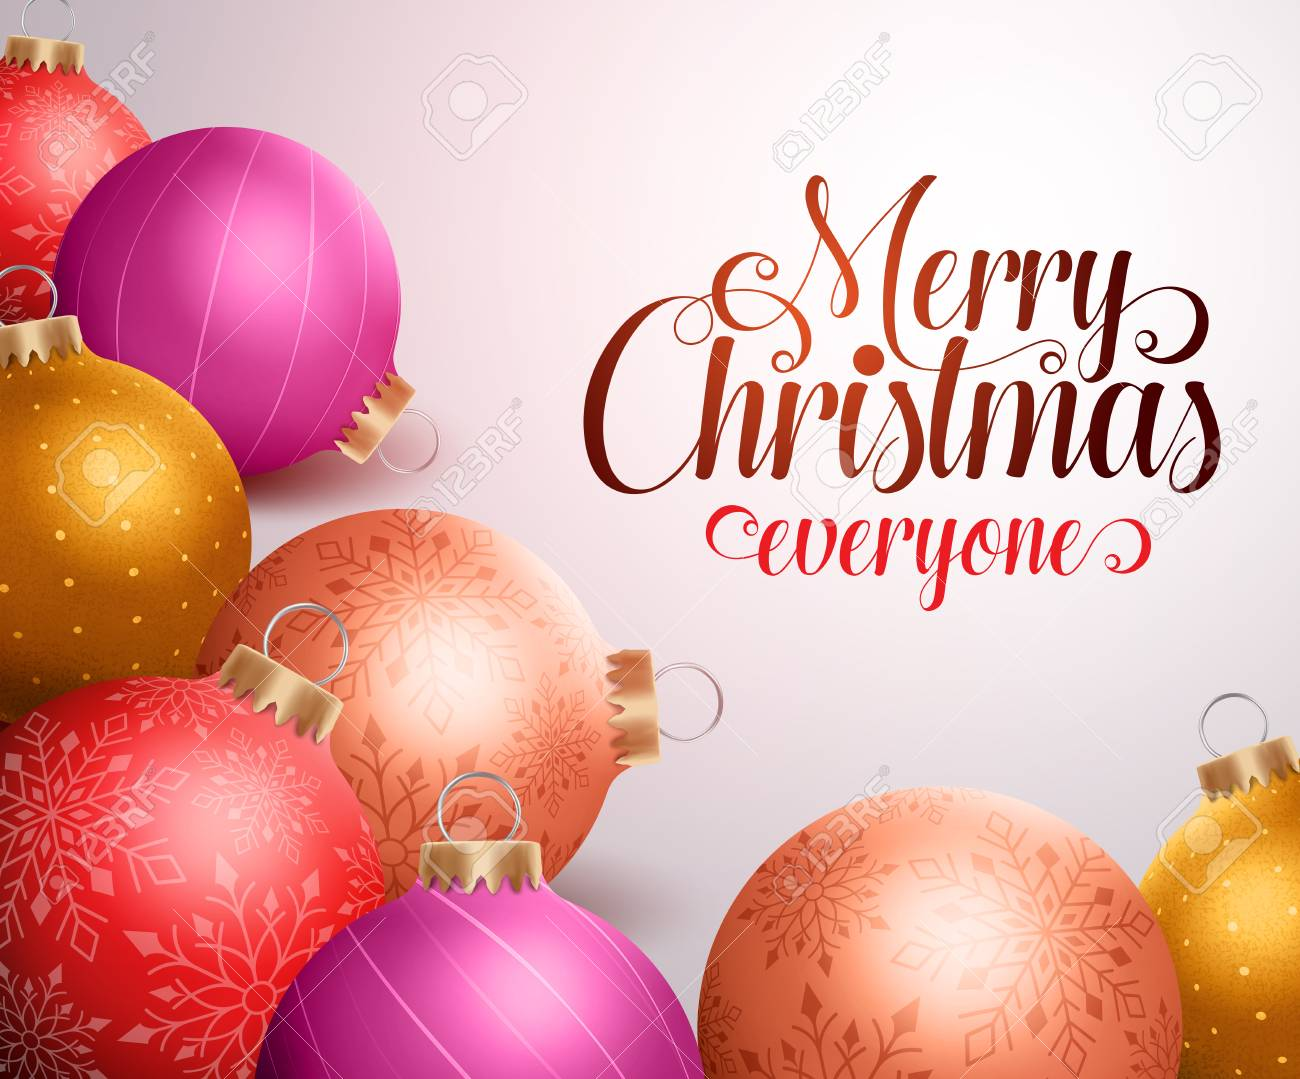 Colorful Christmas Background Design.Merry Christmas Background Design With Colorful Christmas Balls